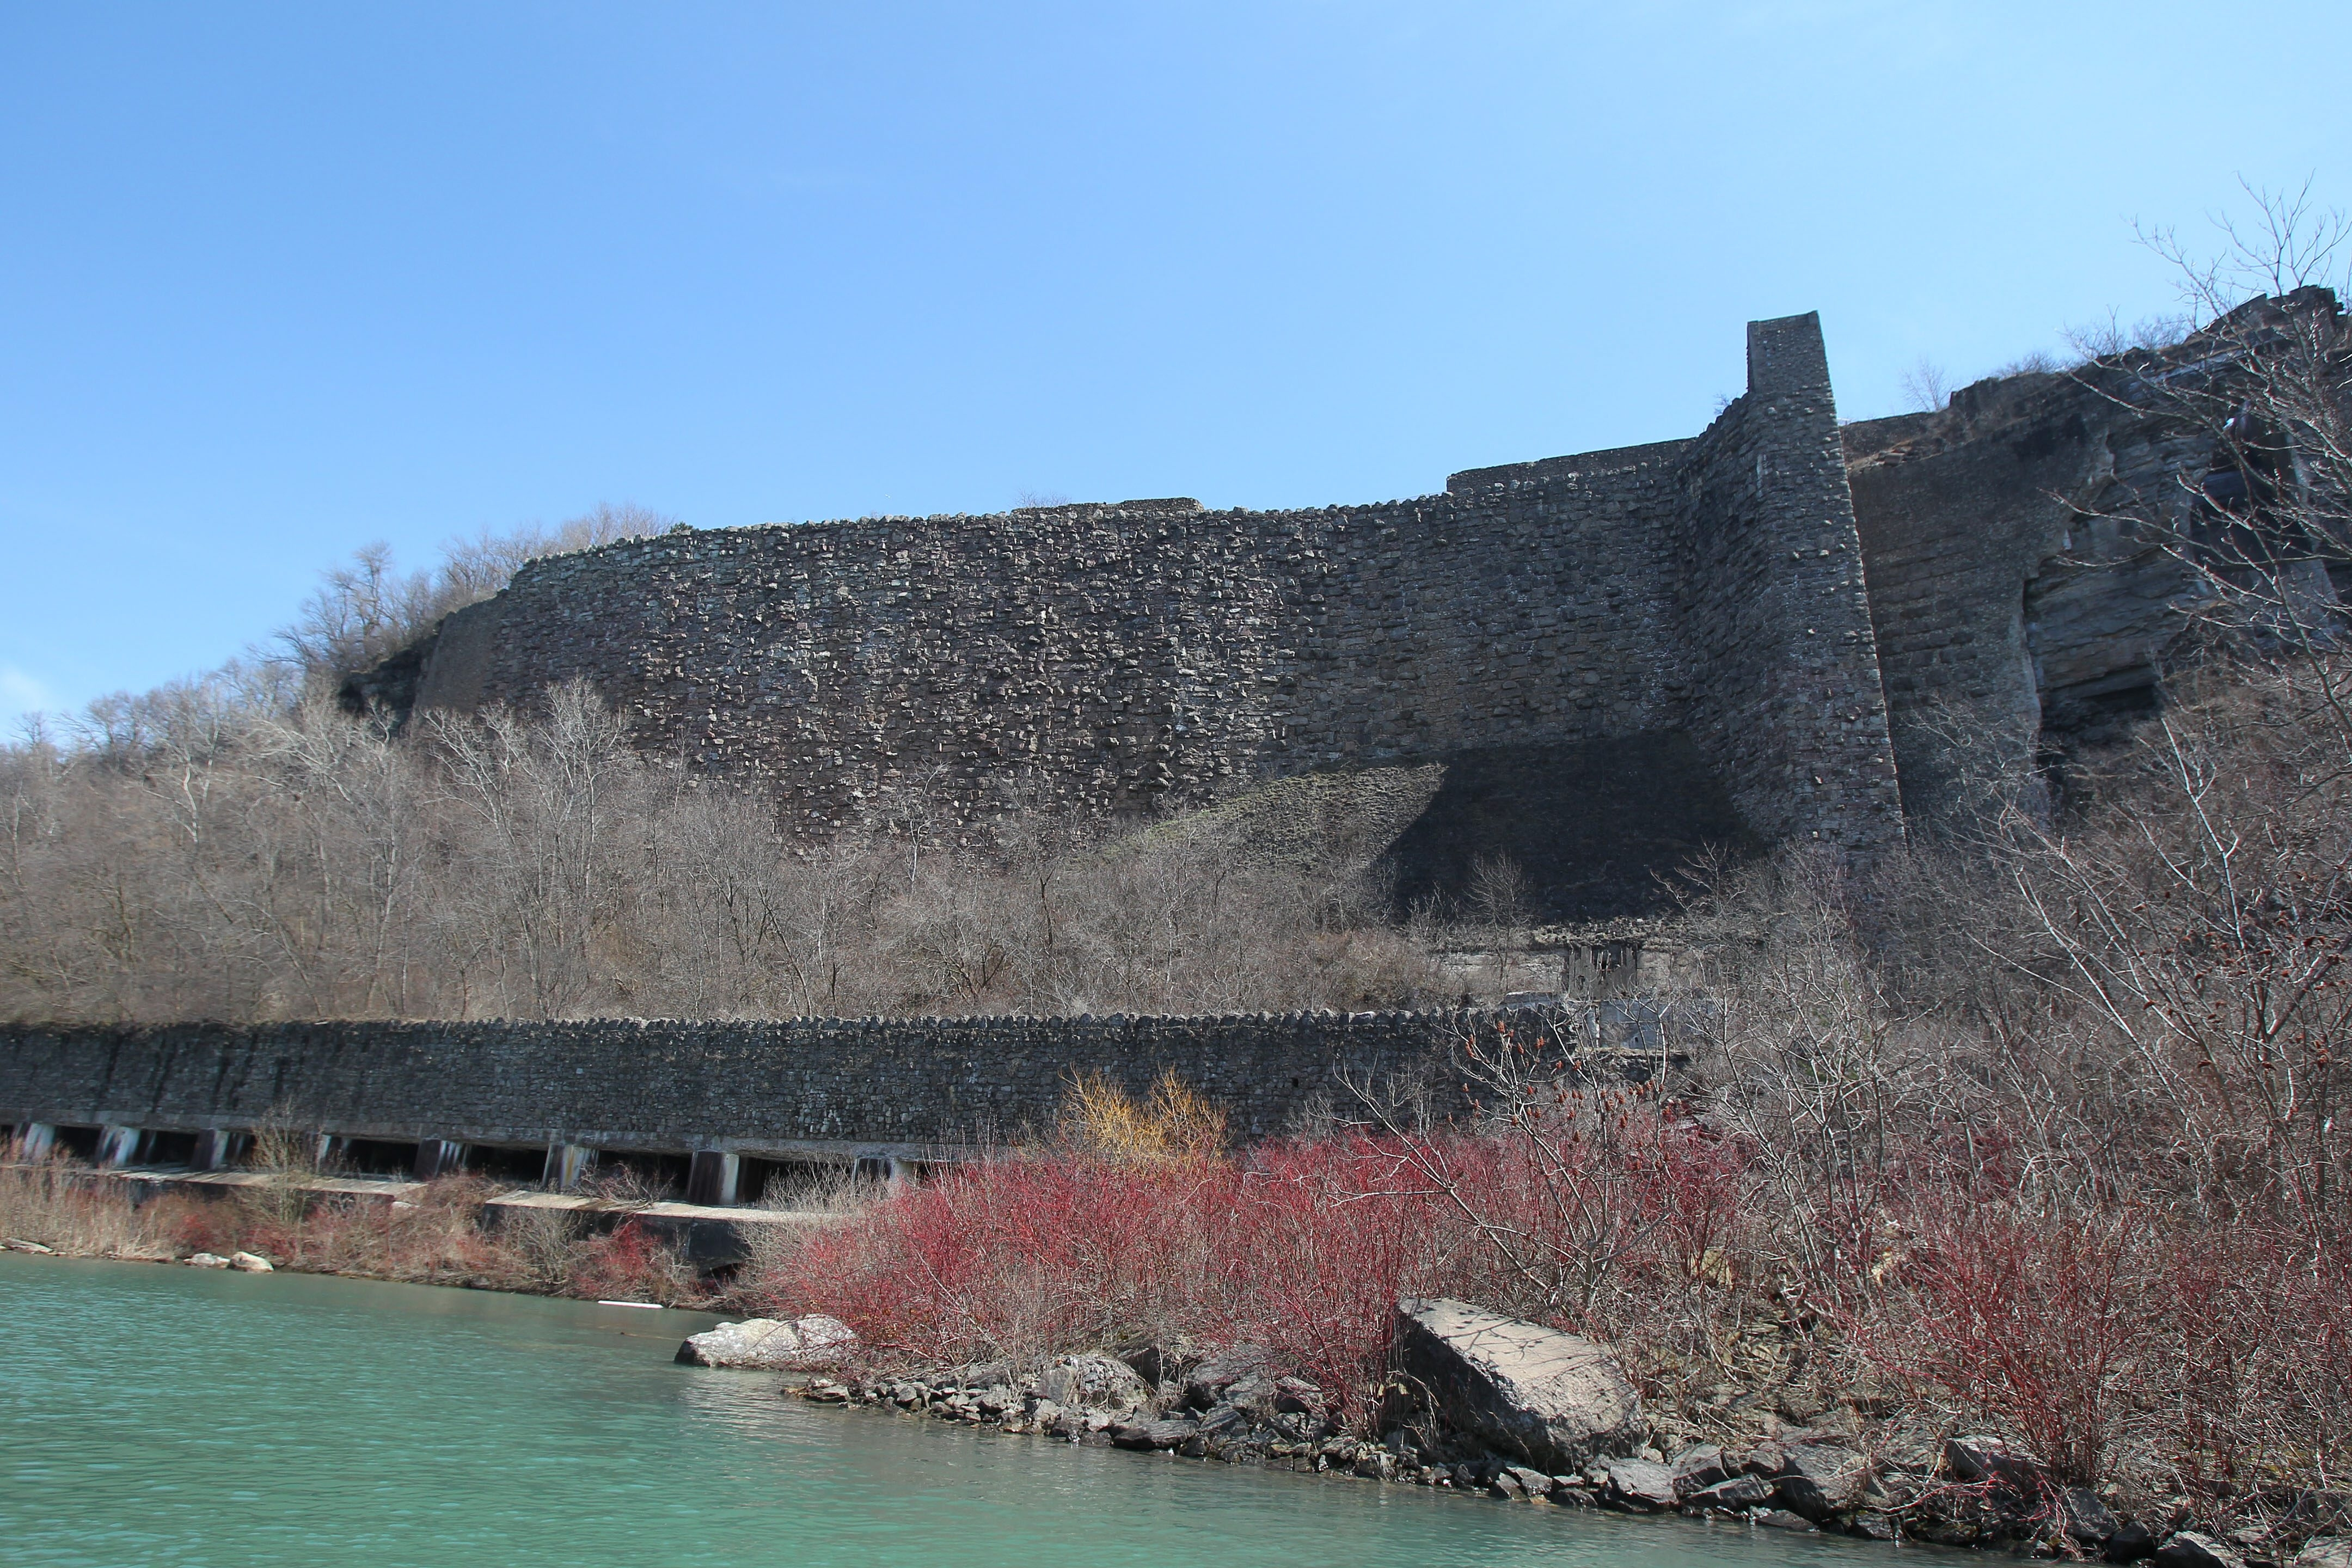 The old Schoellkopf Power Station site is where the Maid of the Mist tour operator wants to build new docks and a boat storage area, but work has been stopped by a court order obtained by the Niagara Preservation Coalition, which says the project would damage the site.